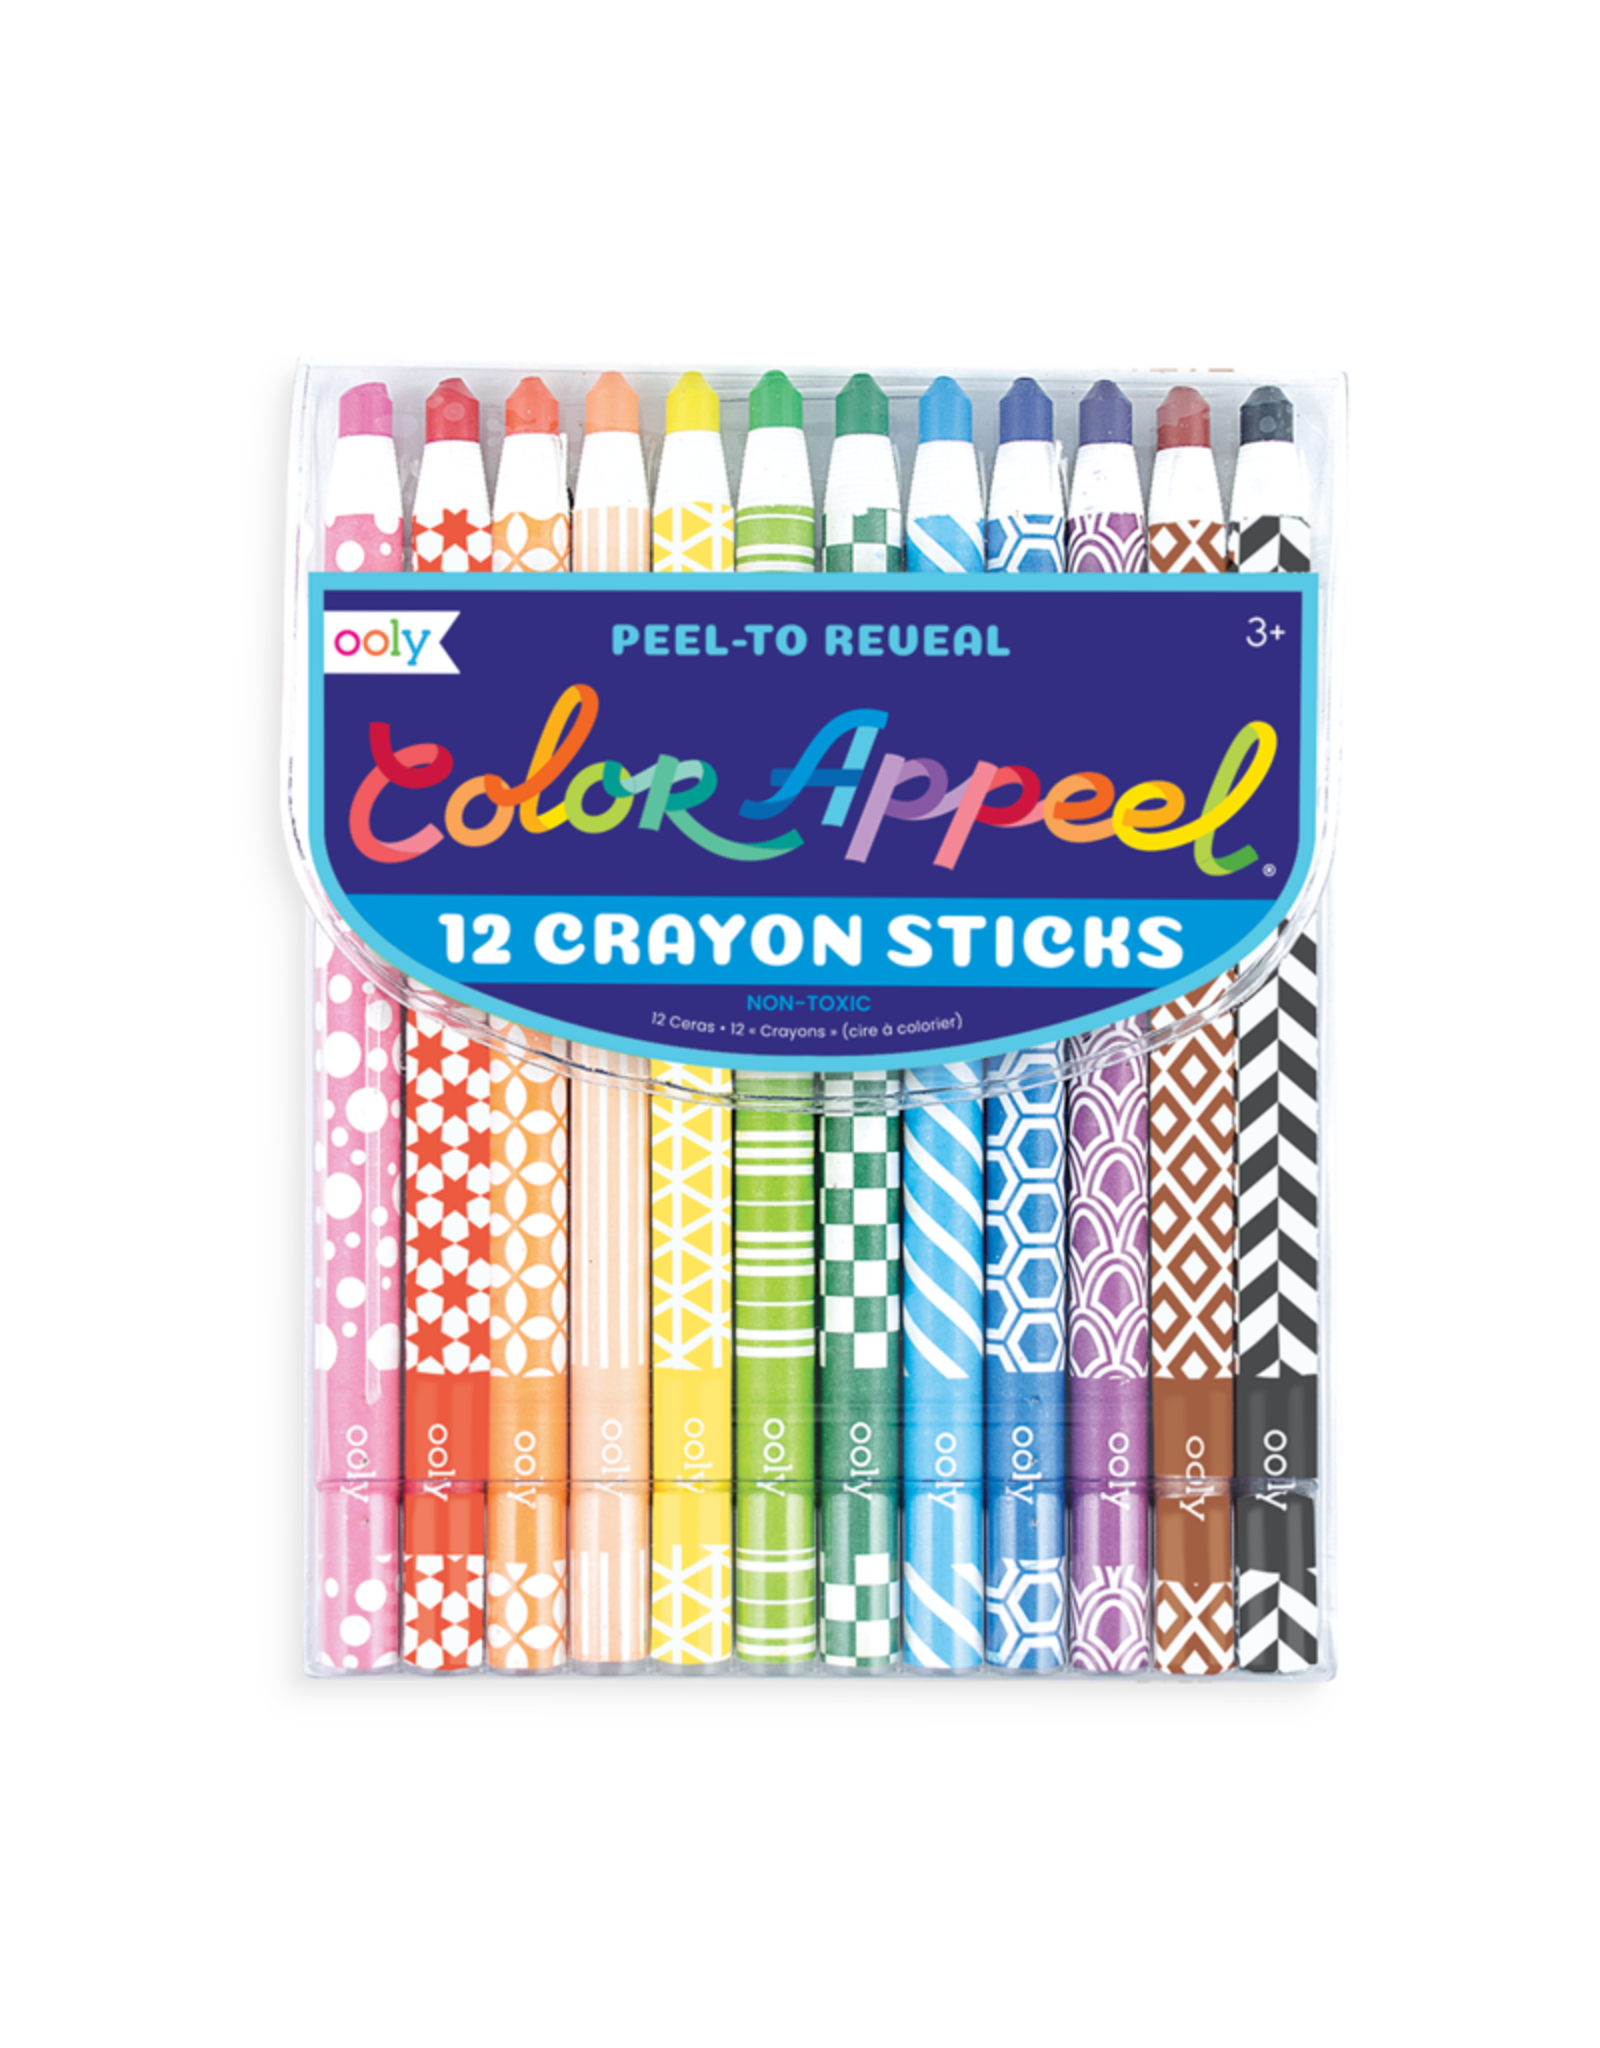 Ooly Color Appeal Crayons - Set of 12